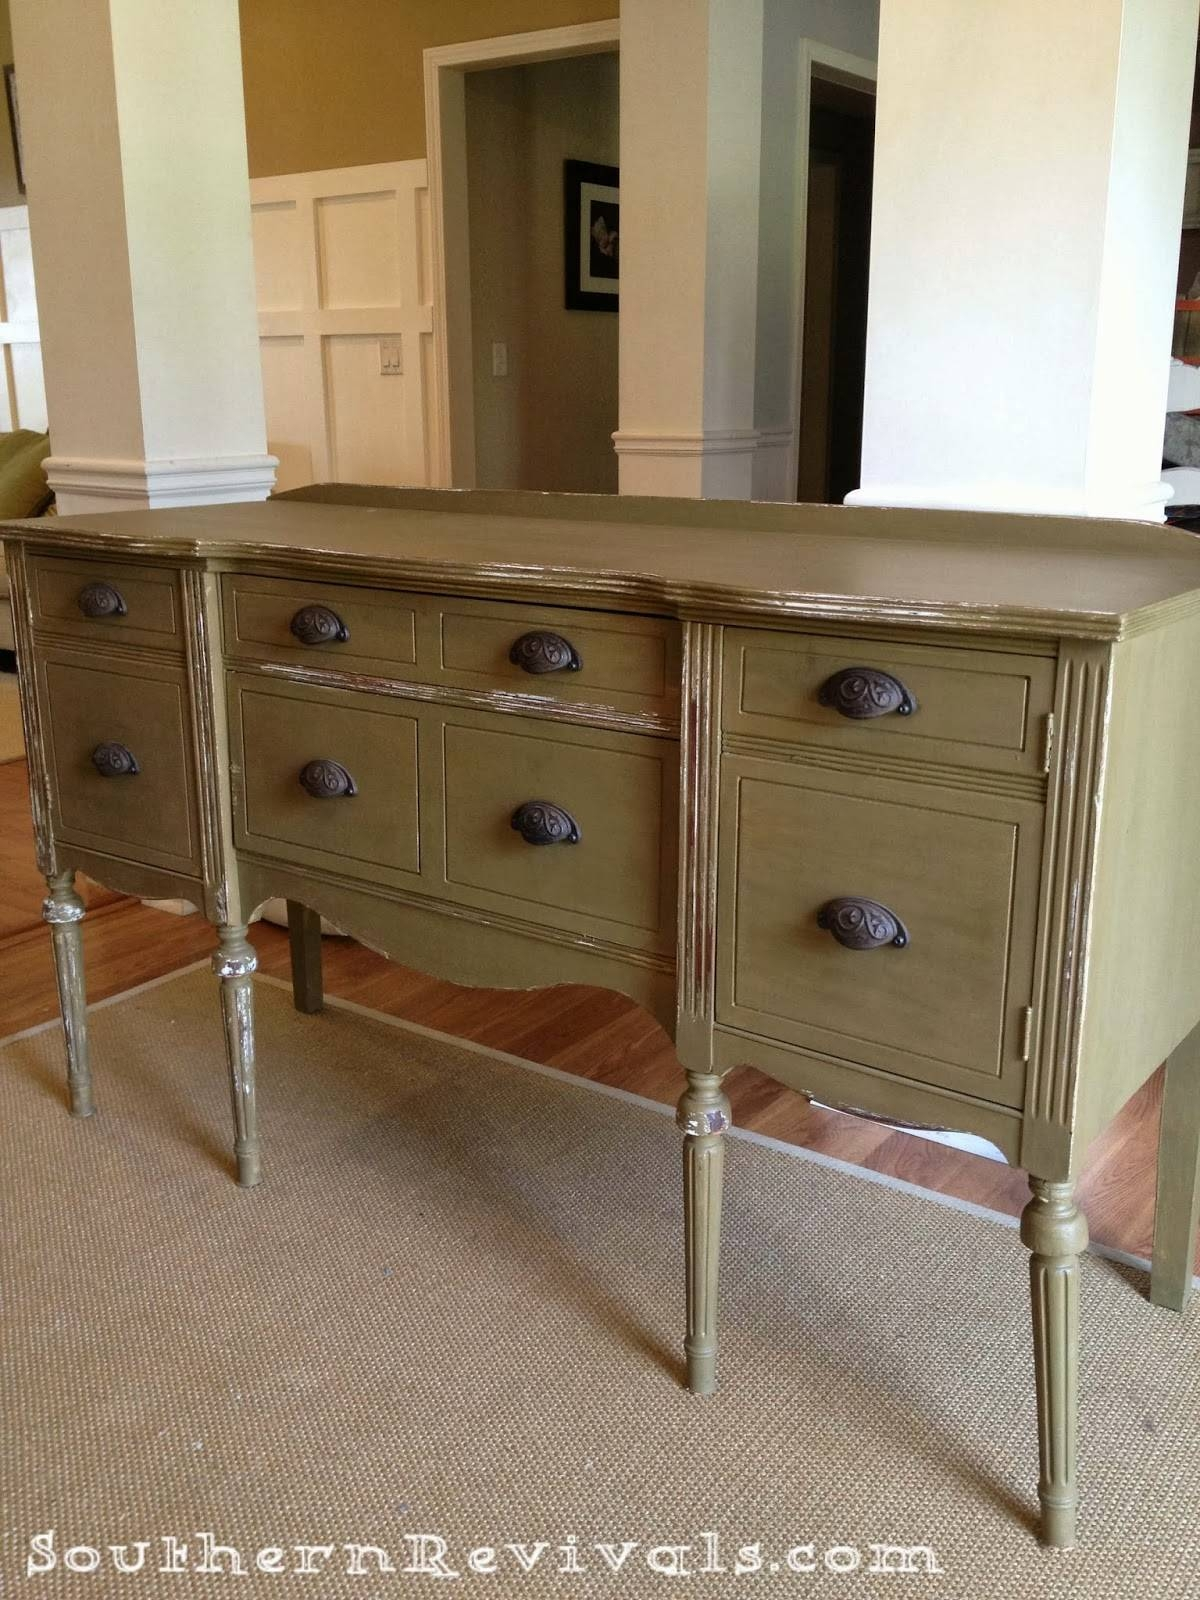 Updating A Vintage Sideboard Buffet With A Pop Of Color – Southern Regarding Current Antique Sideboards And Buffets (#14 of 15)